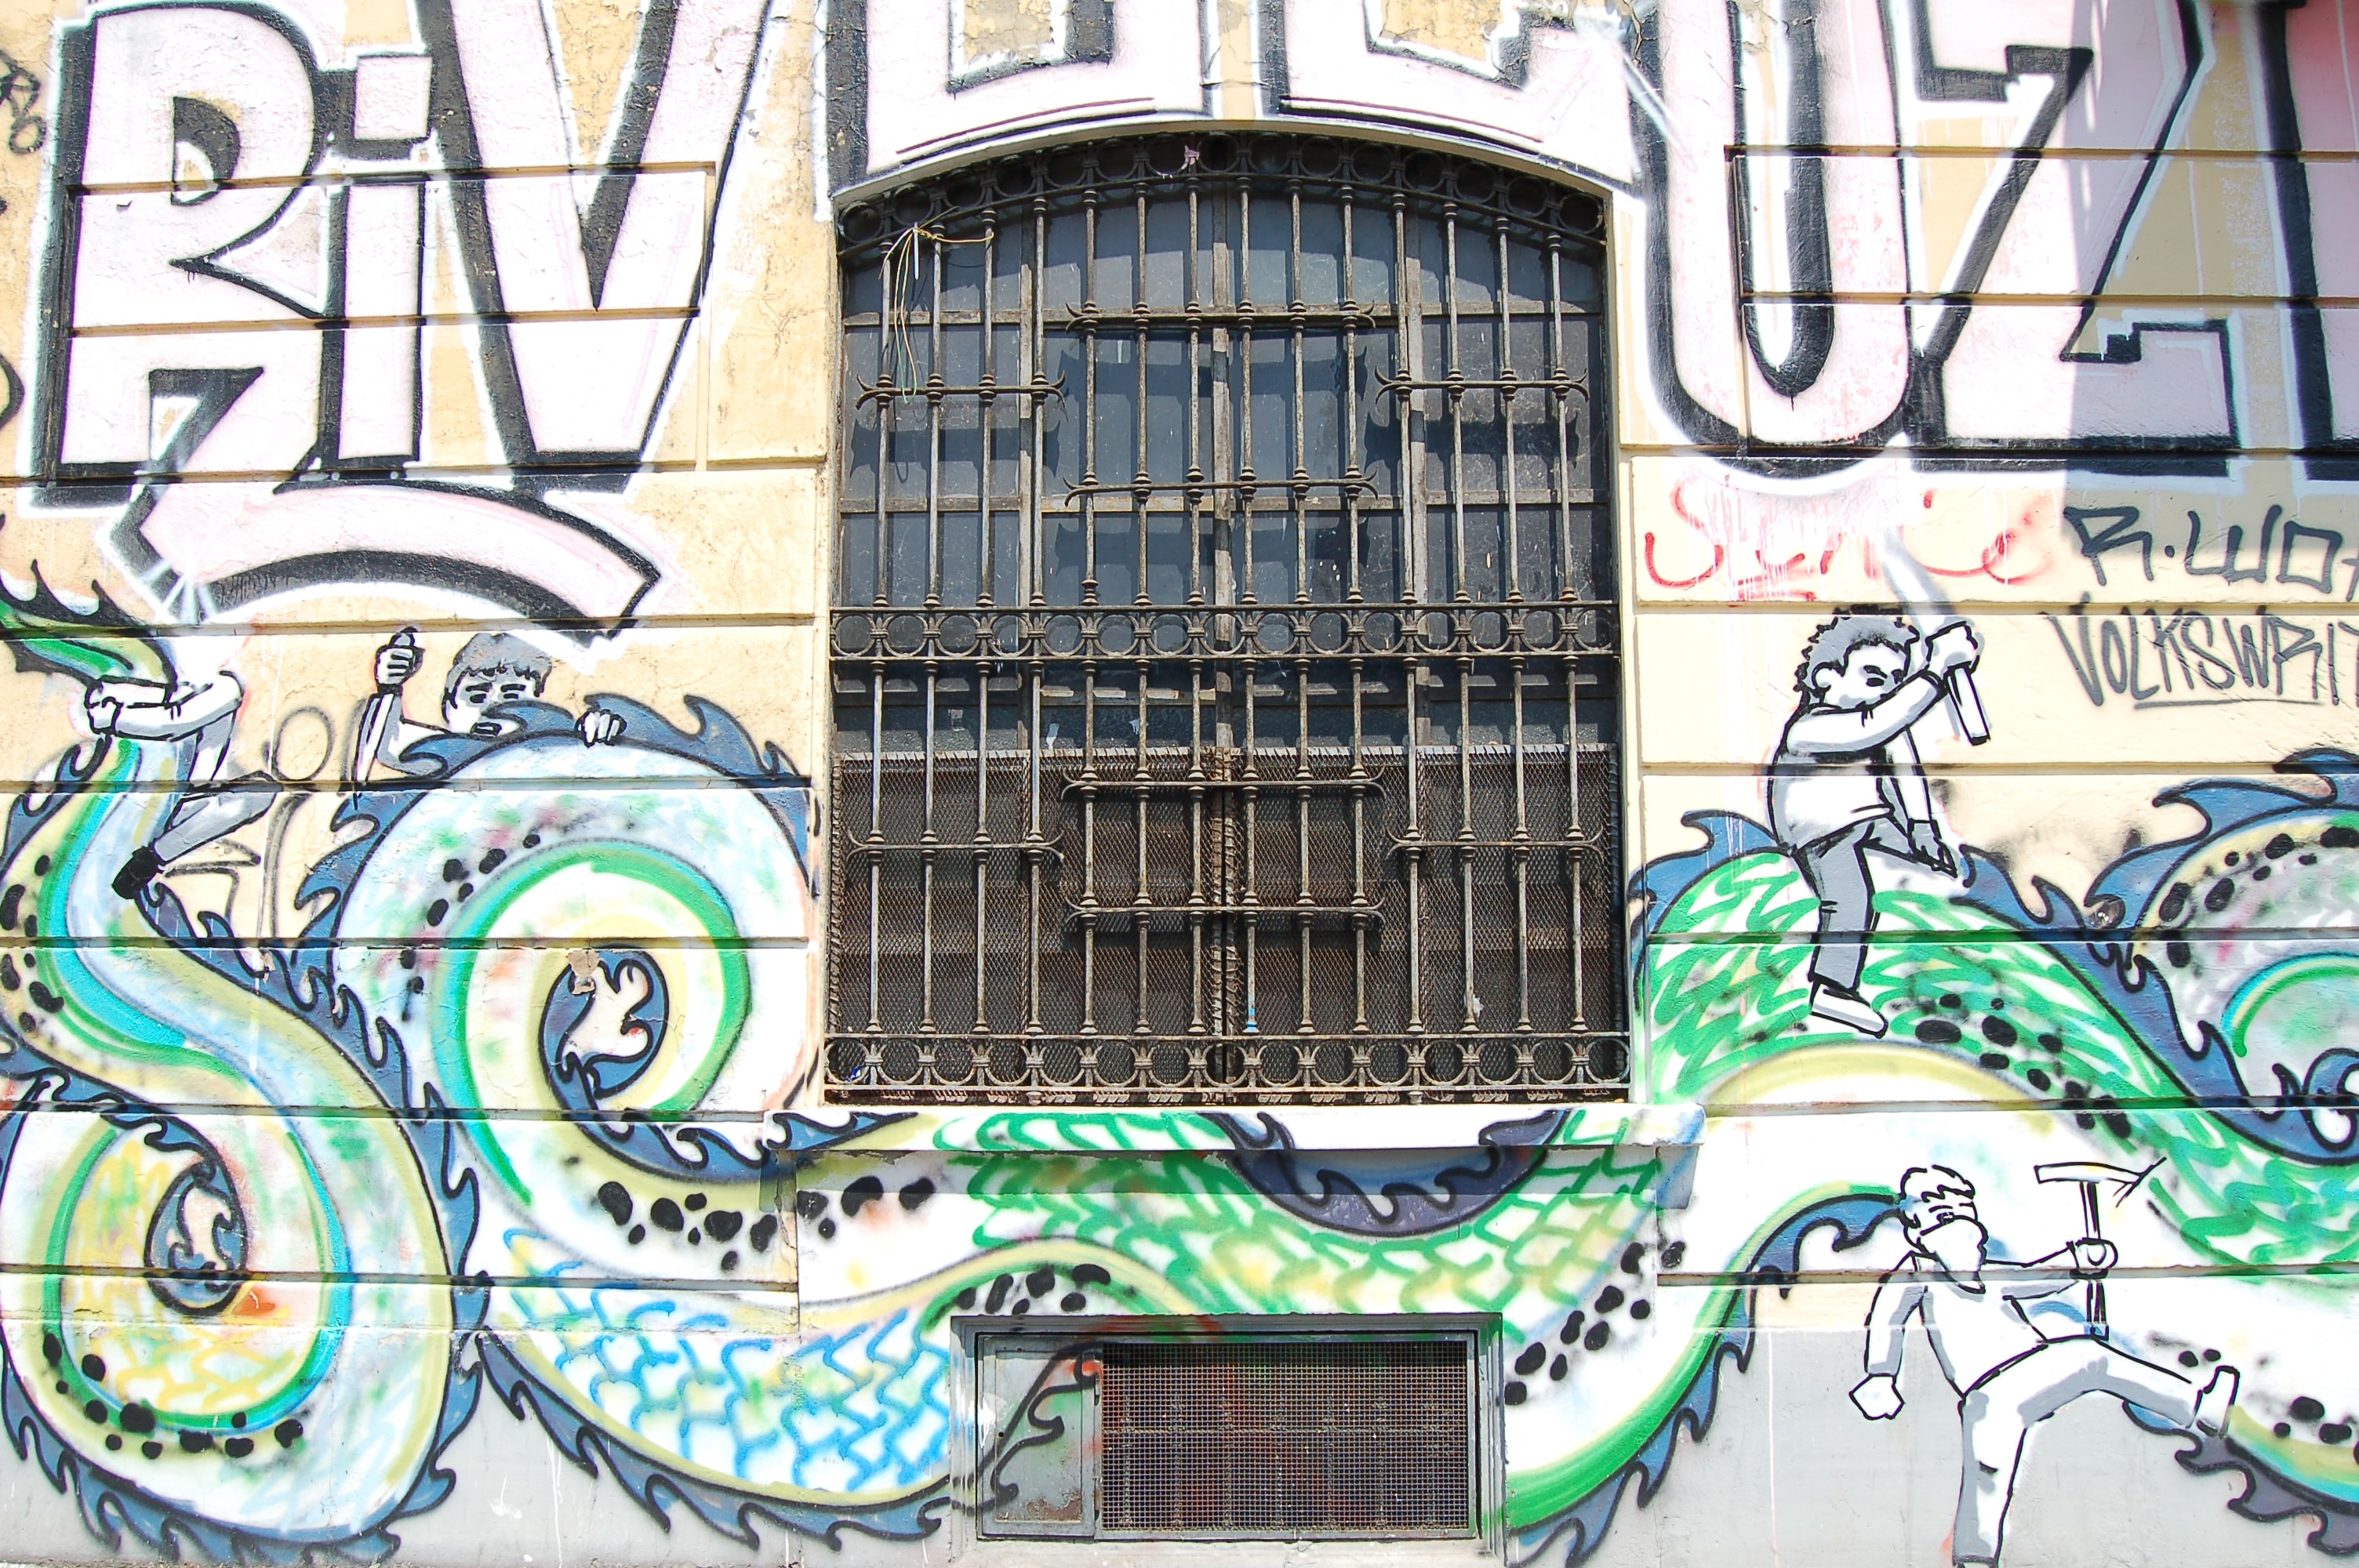 Text and snake dragon graffiti on building wall with barred windows